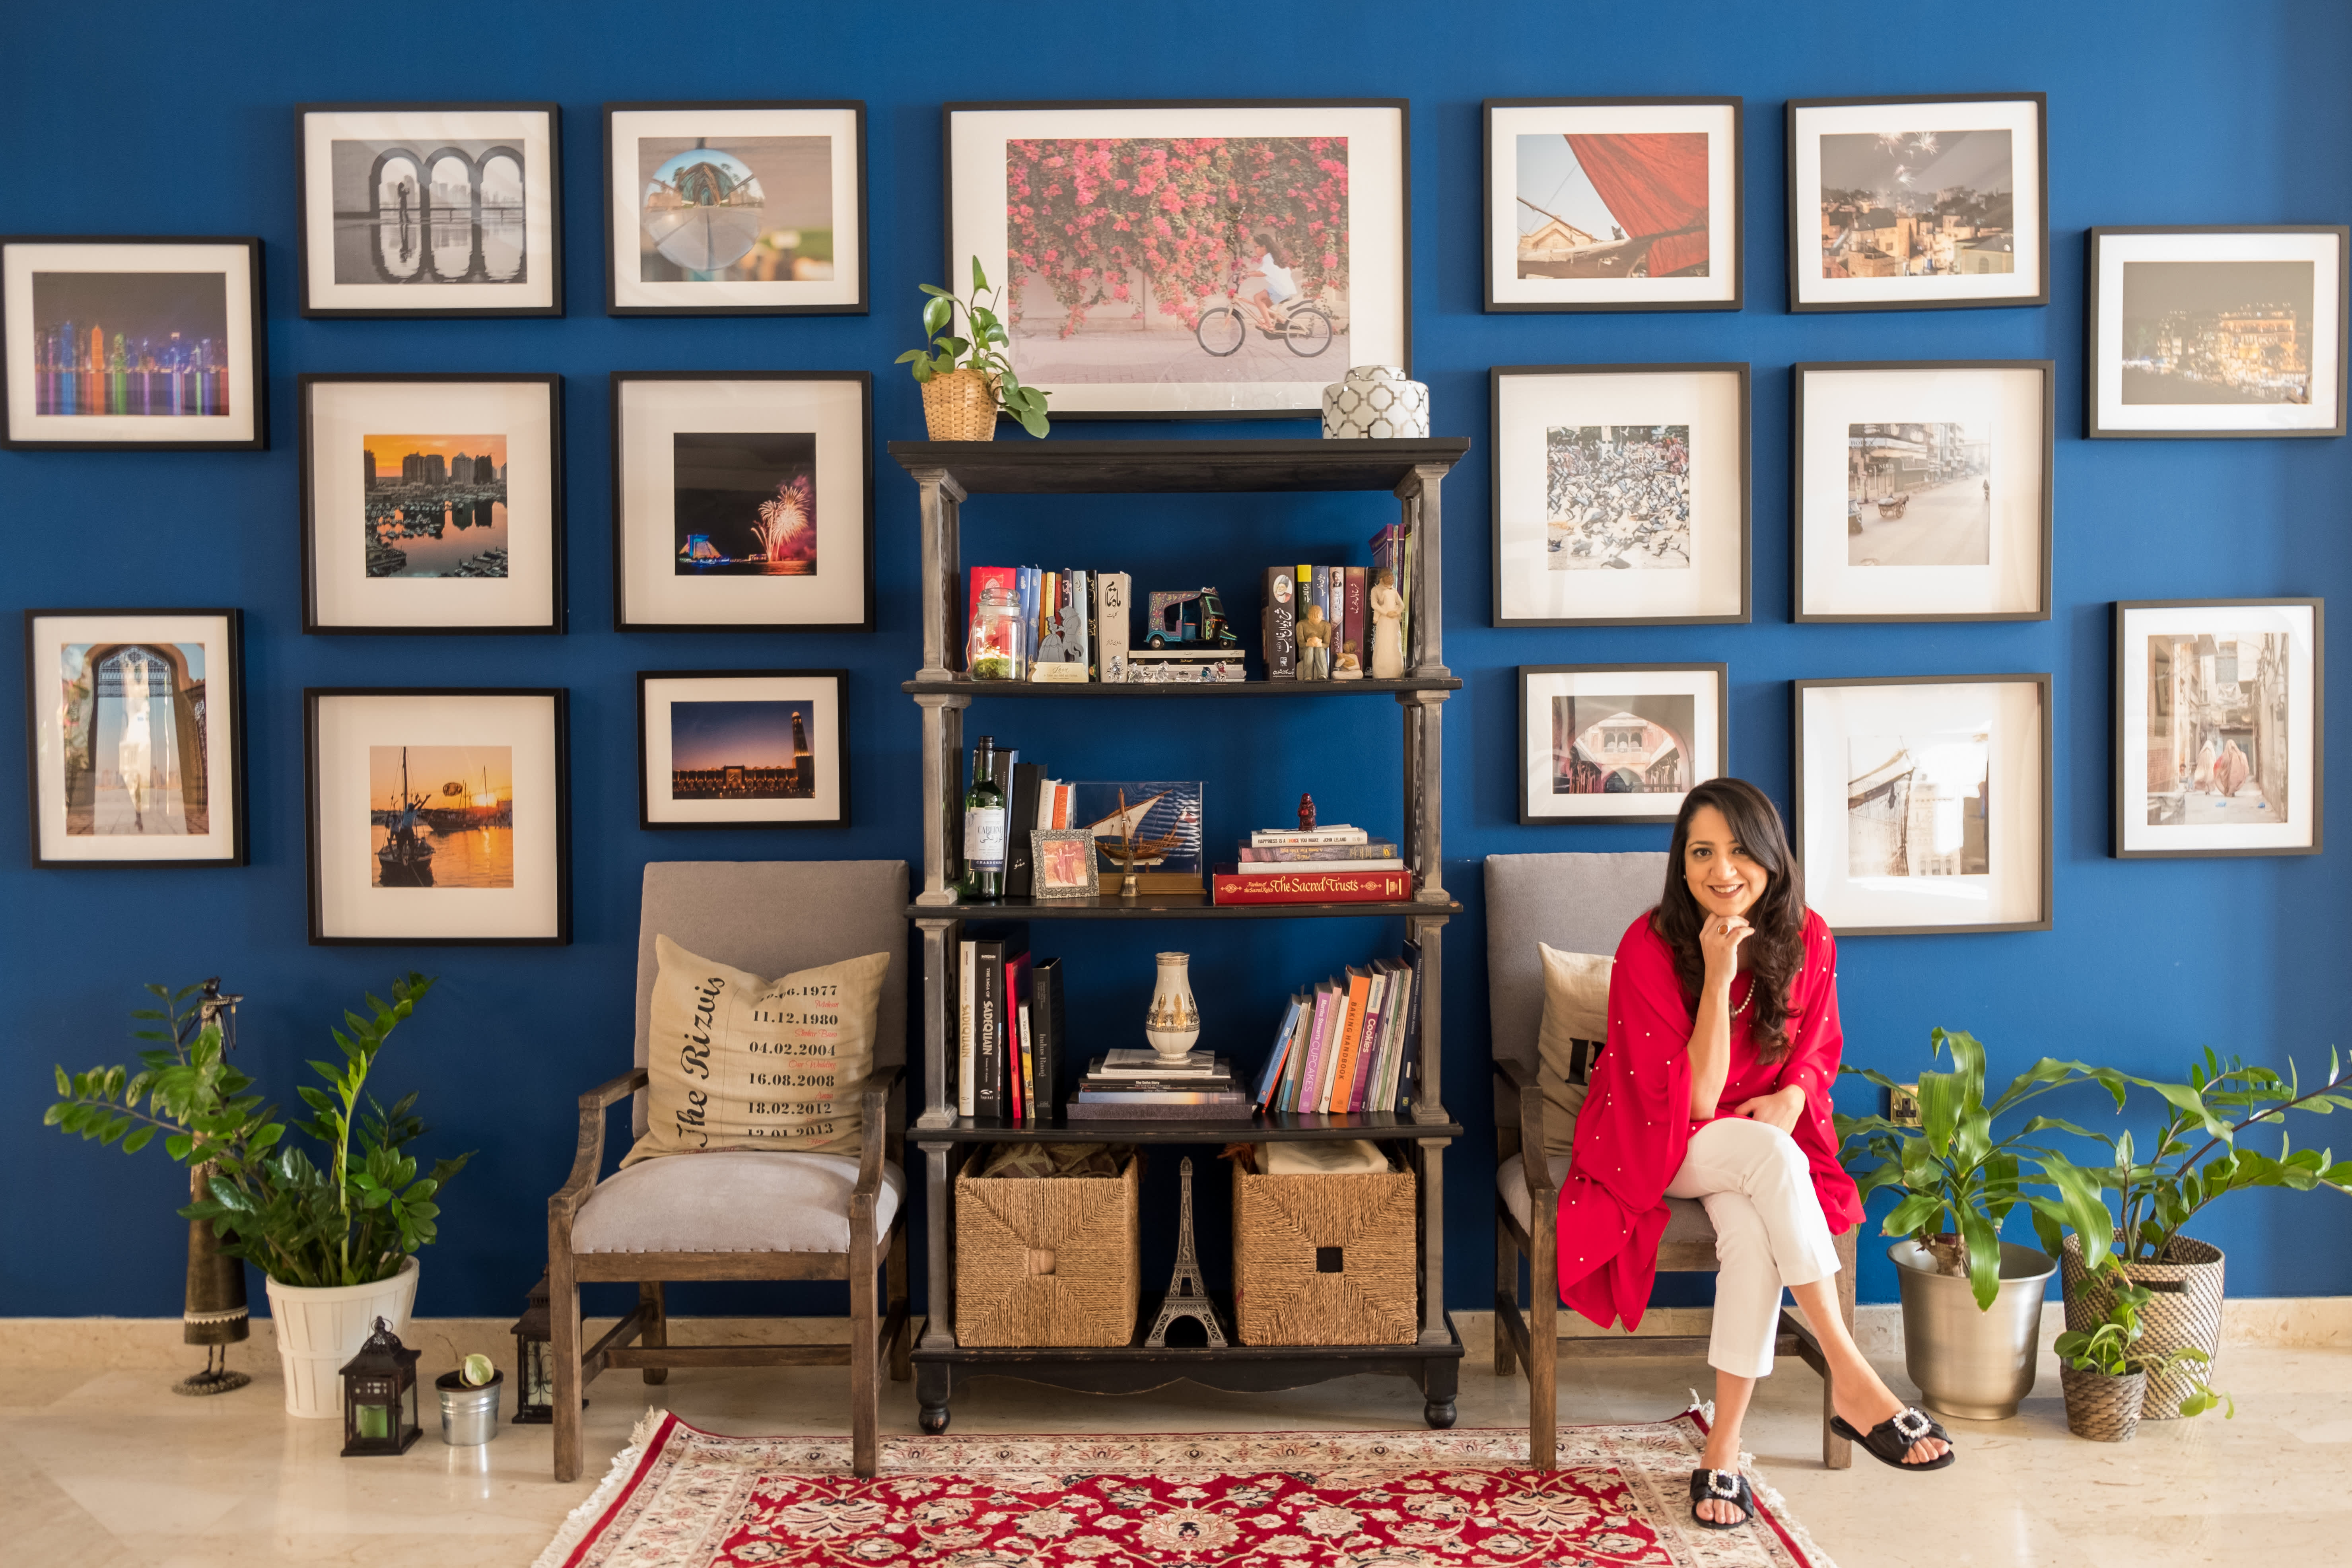 A Rental Home's Made Personal with Color and Culture